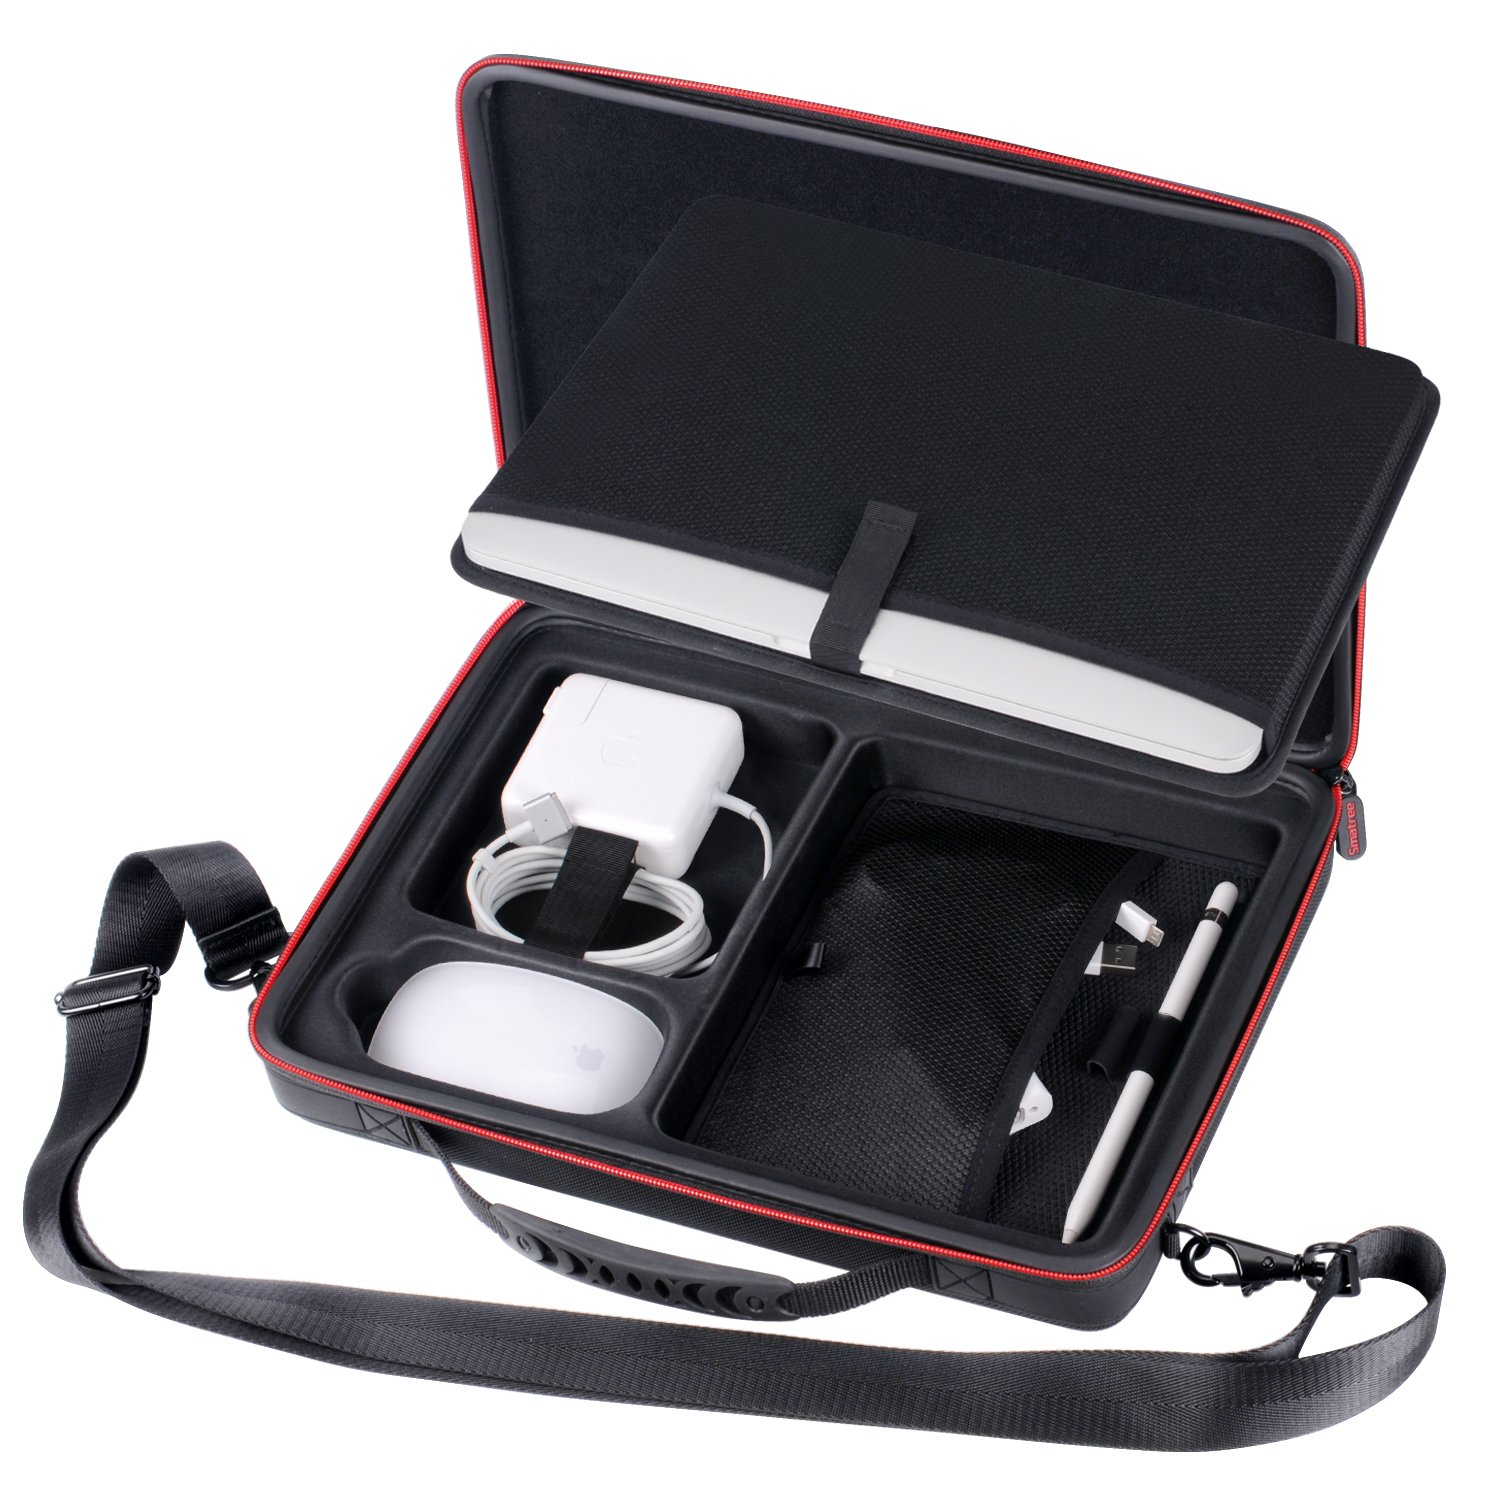 Smatree Carry Case for 12-13.3 inch MacBook Laptop (Black) by Smatree